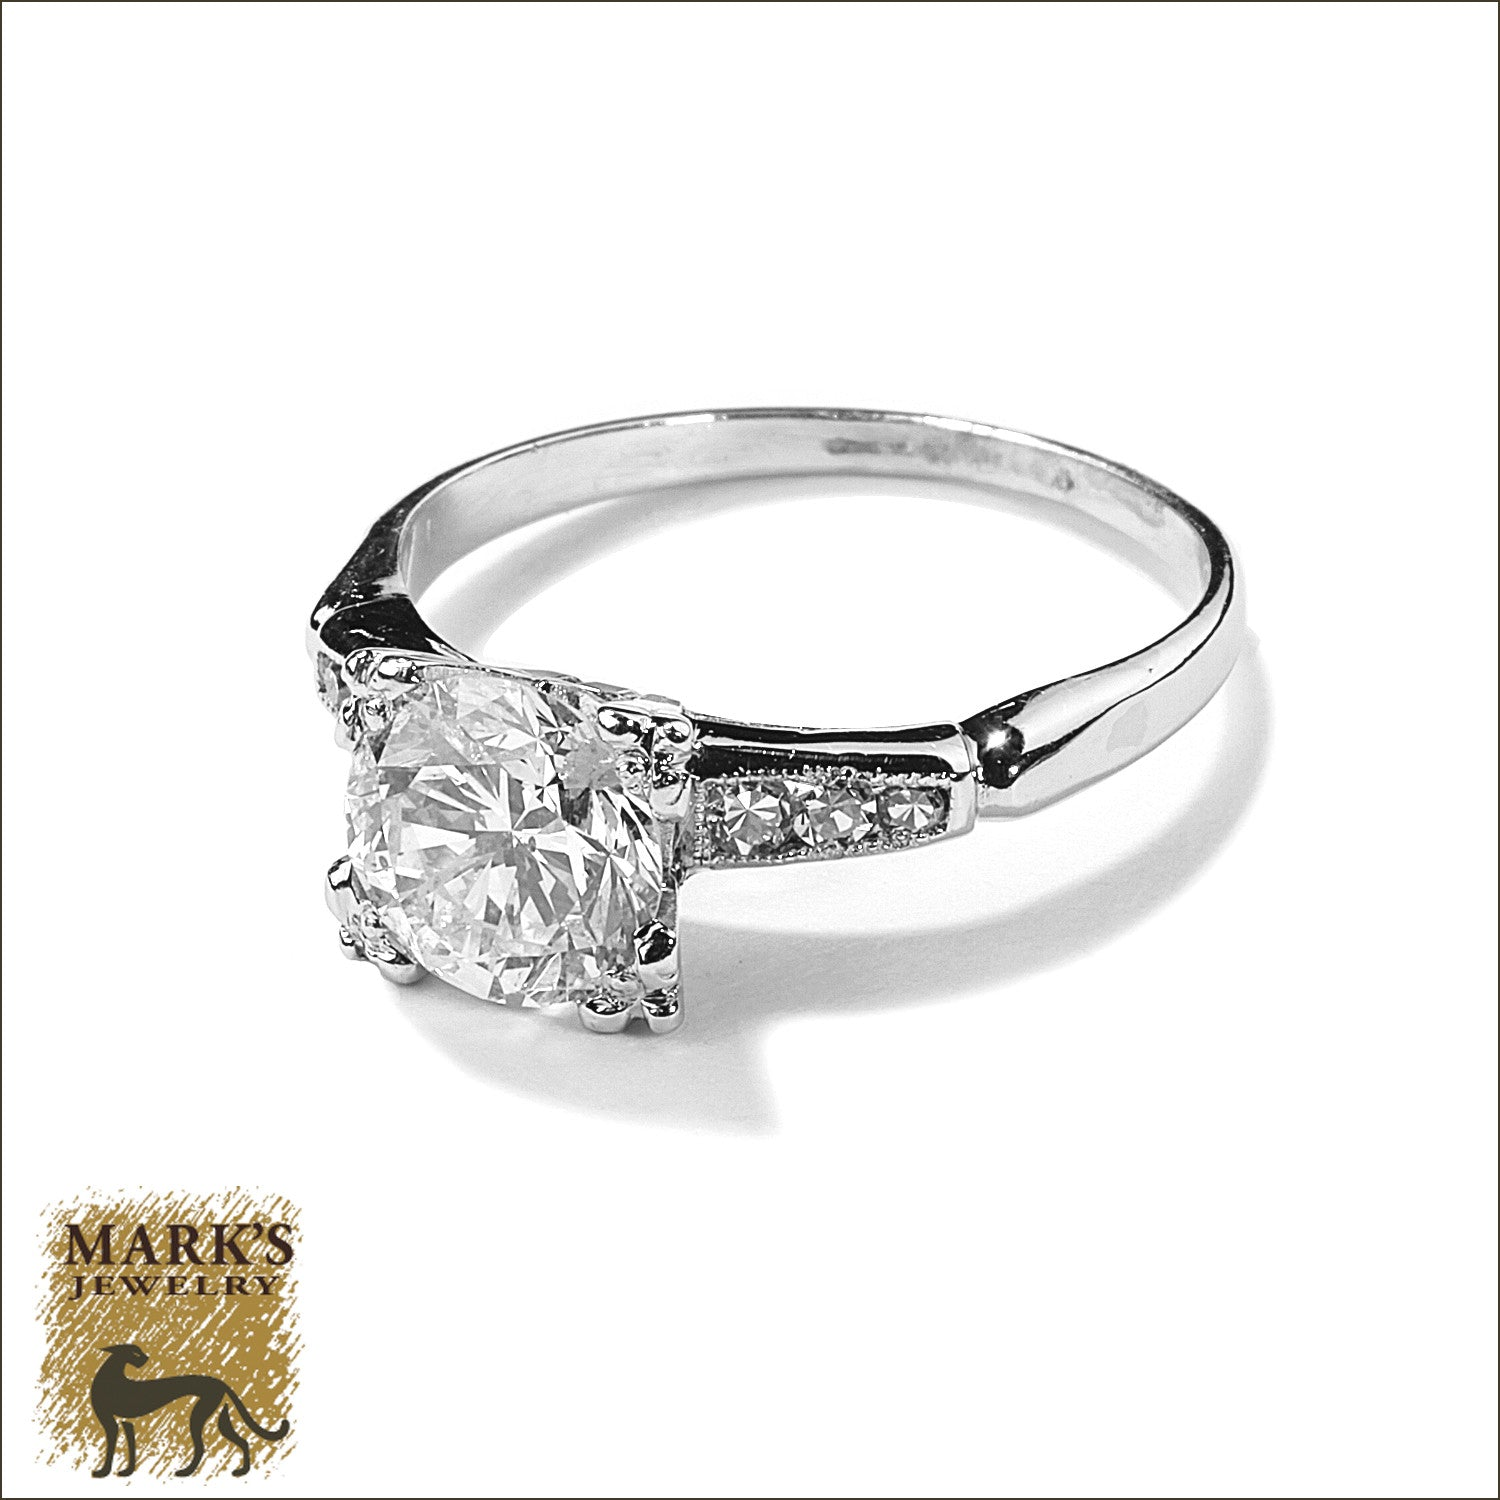 rings european engagement york old ugihlwu new solitaire chic promise ring wedding estate diamond